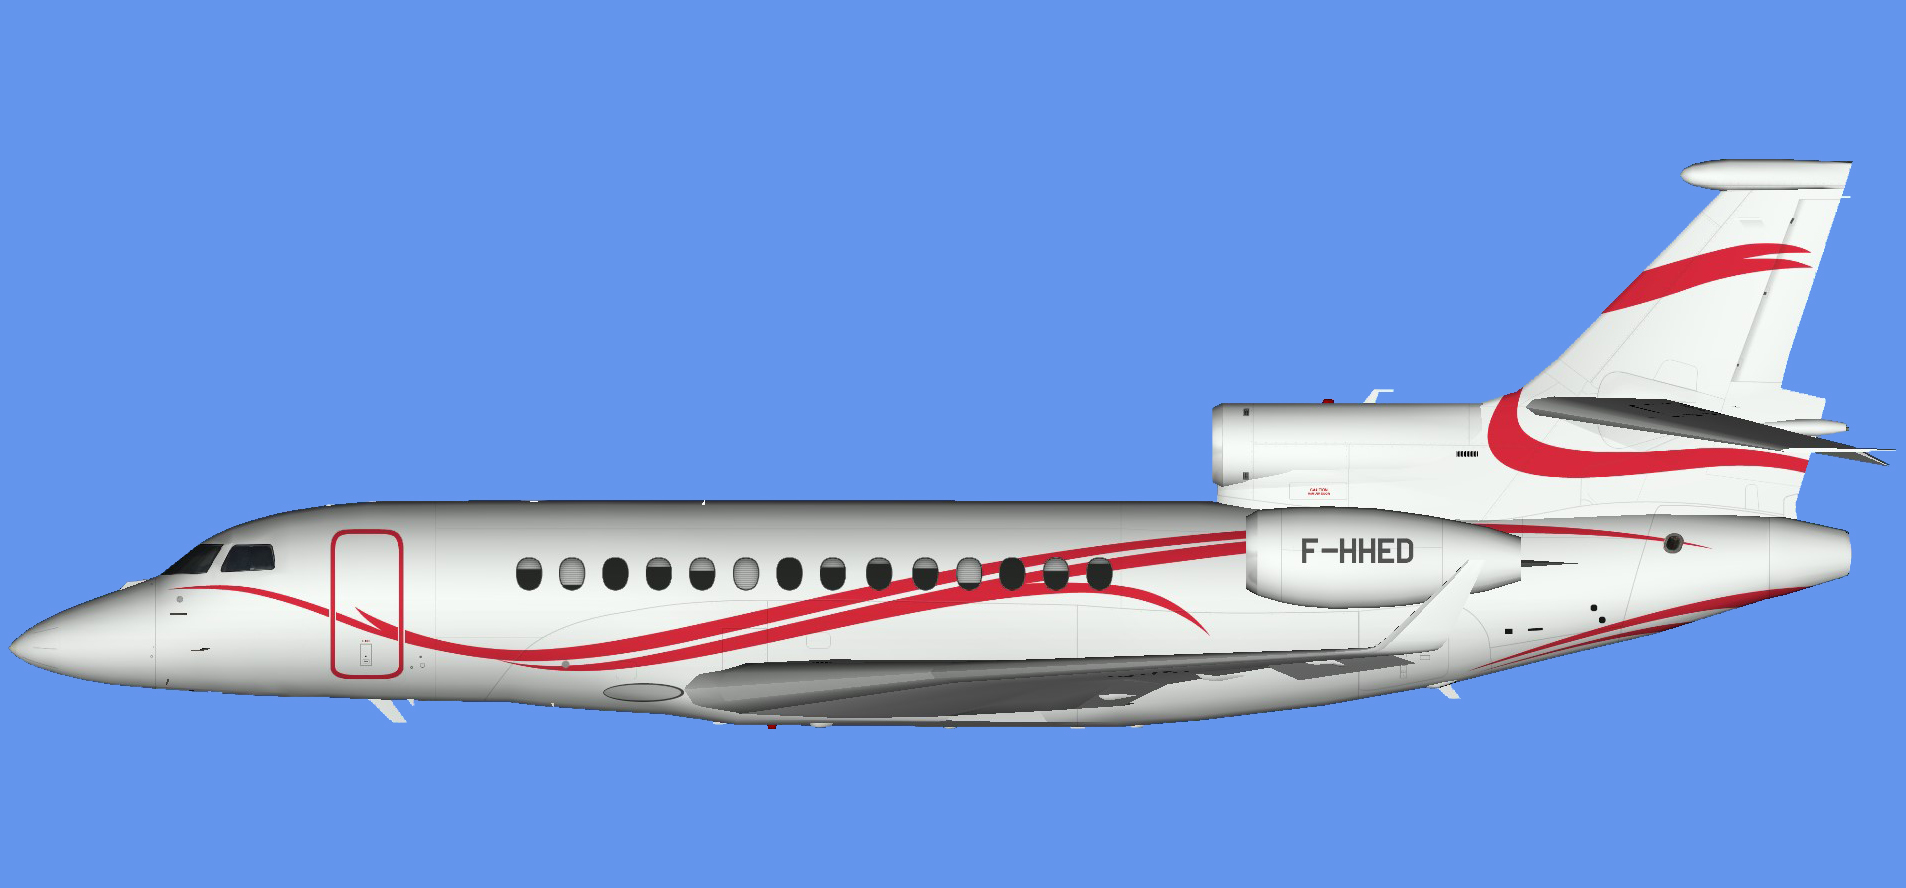 Dassault Falcon 7x F-HHED